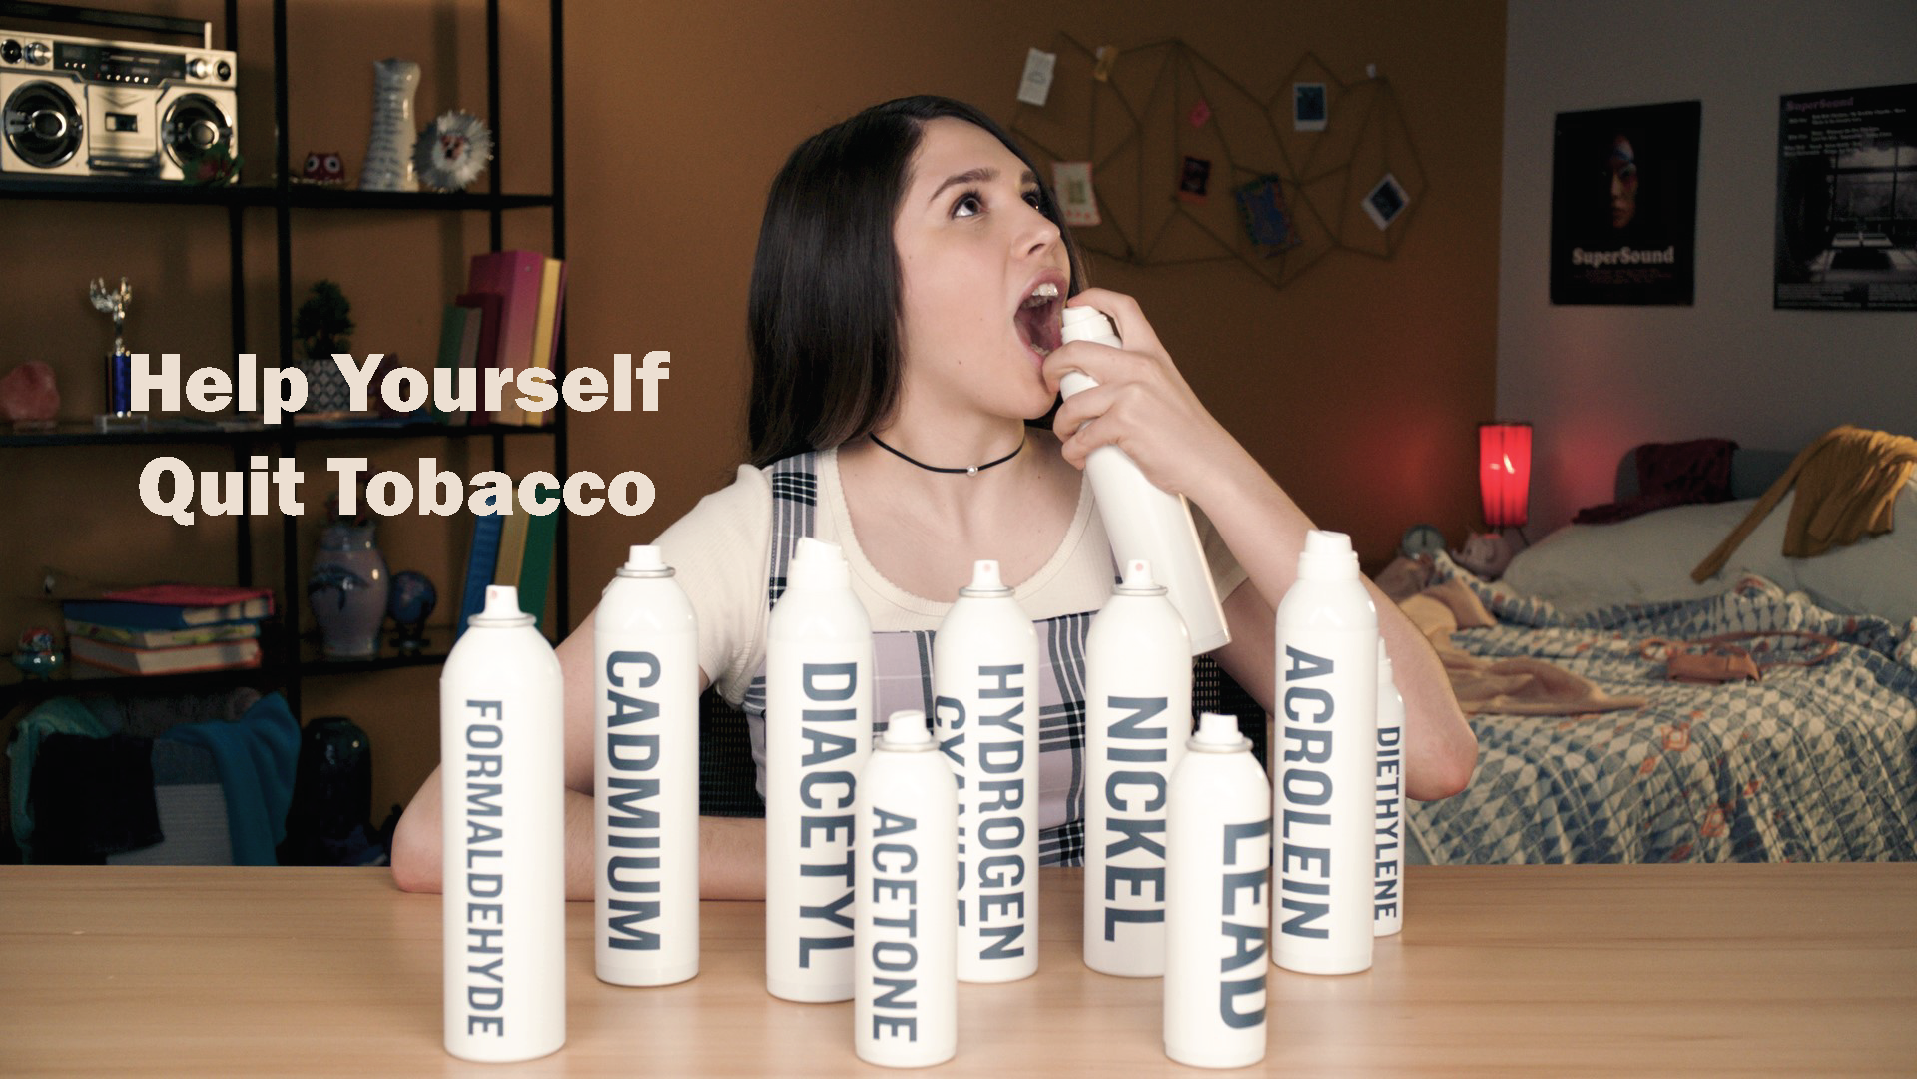 Help yourself quit tobacco.